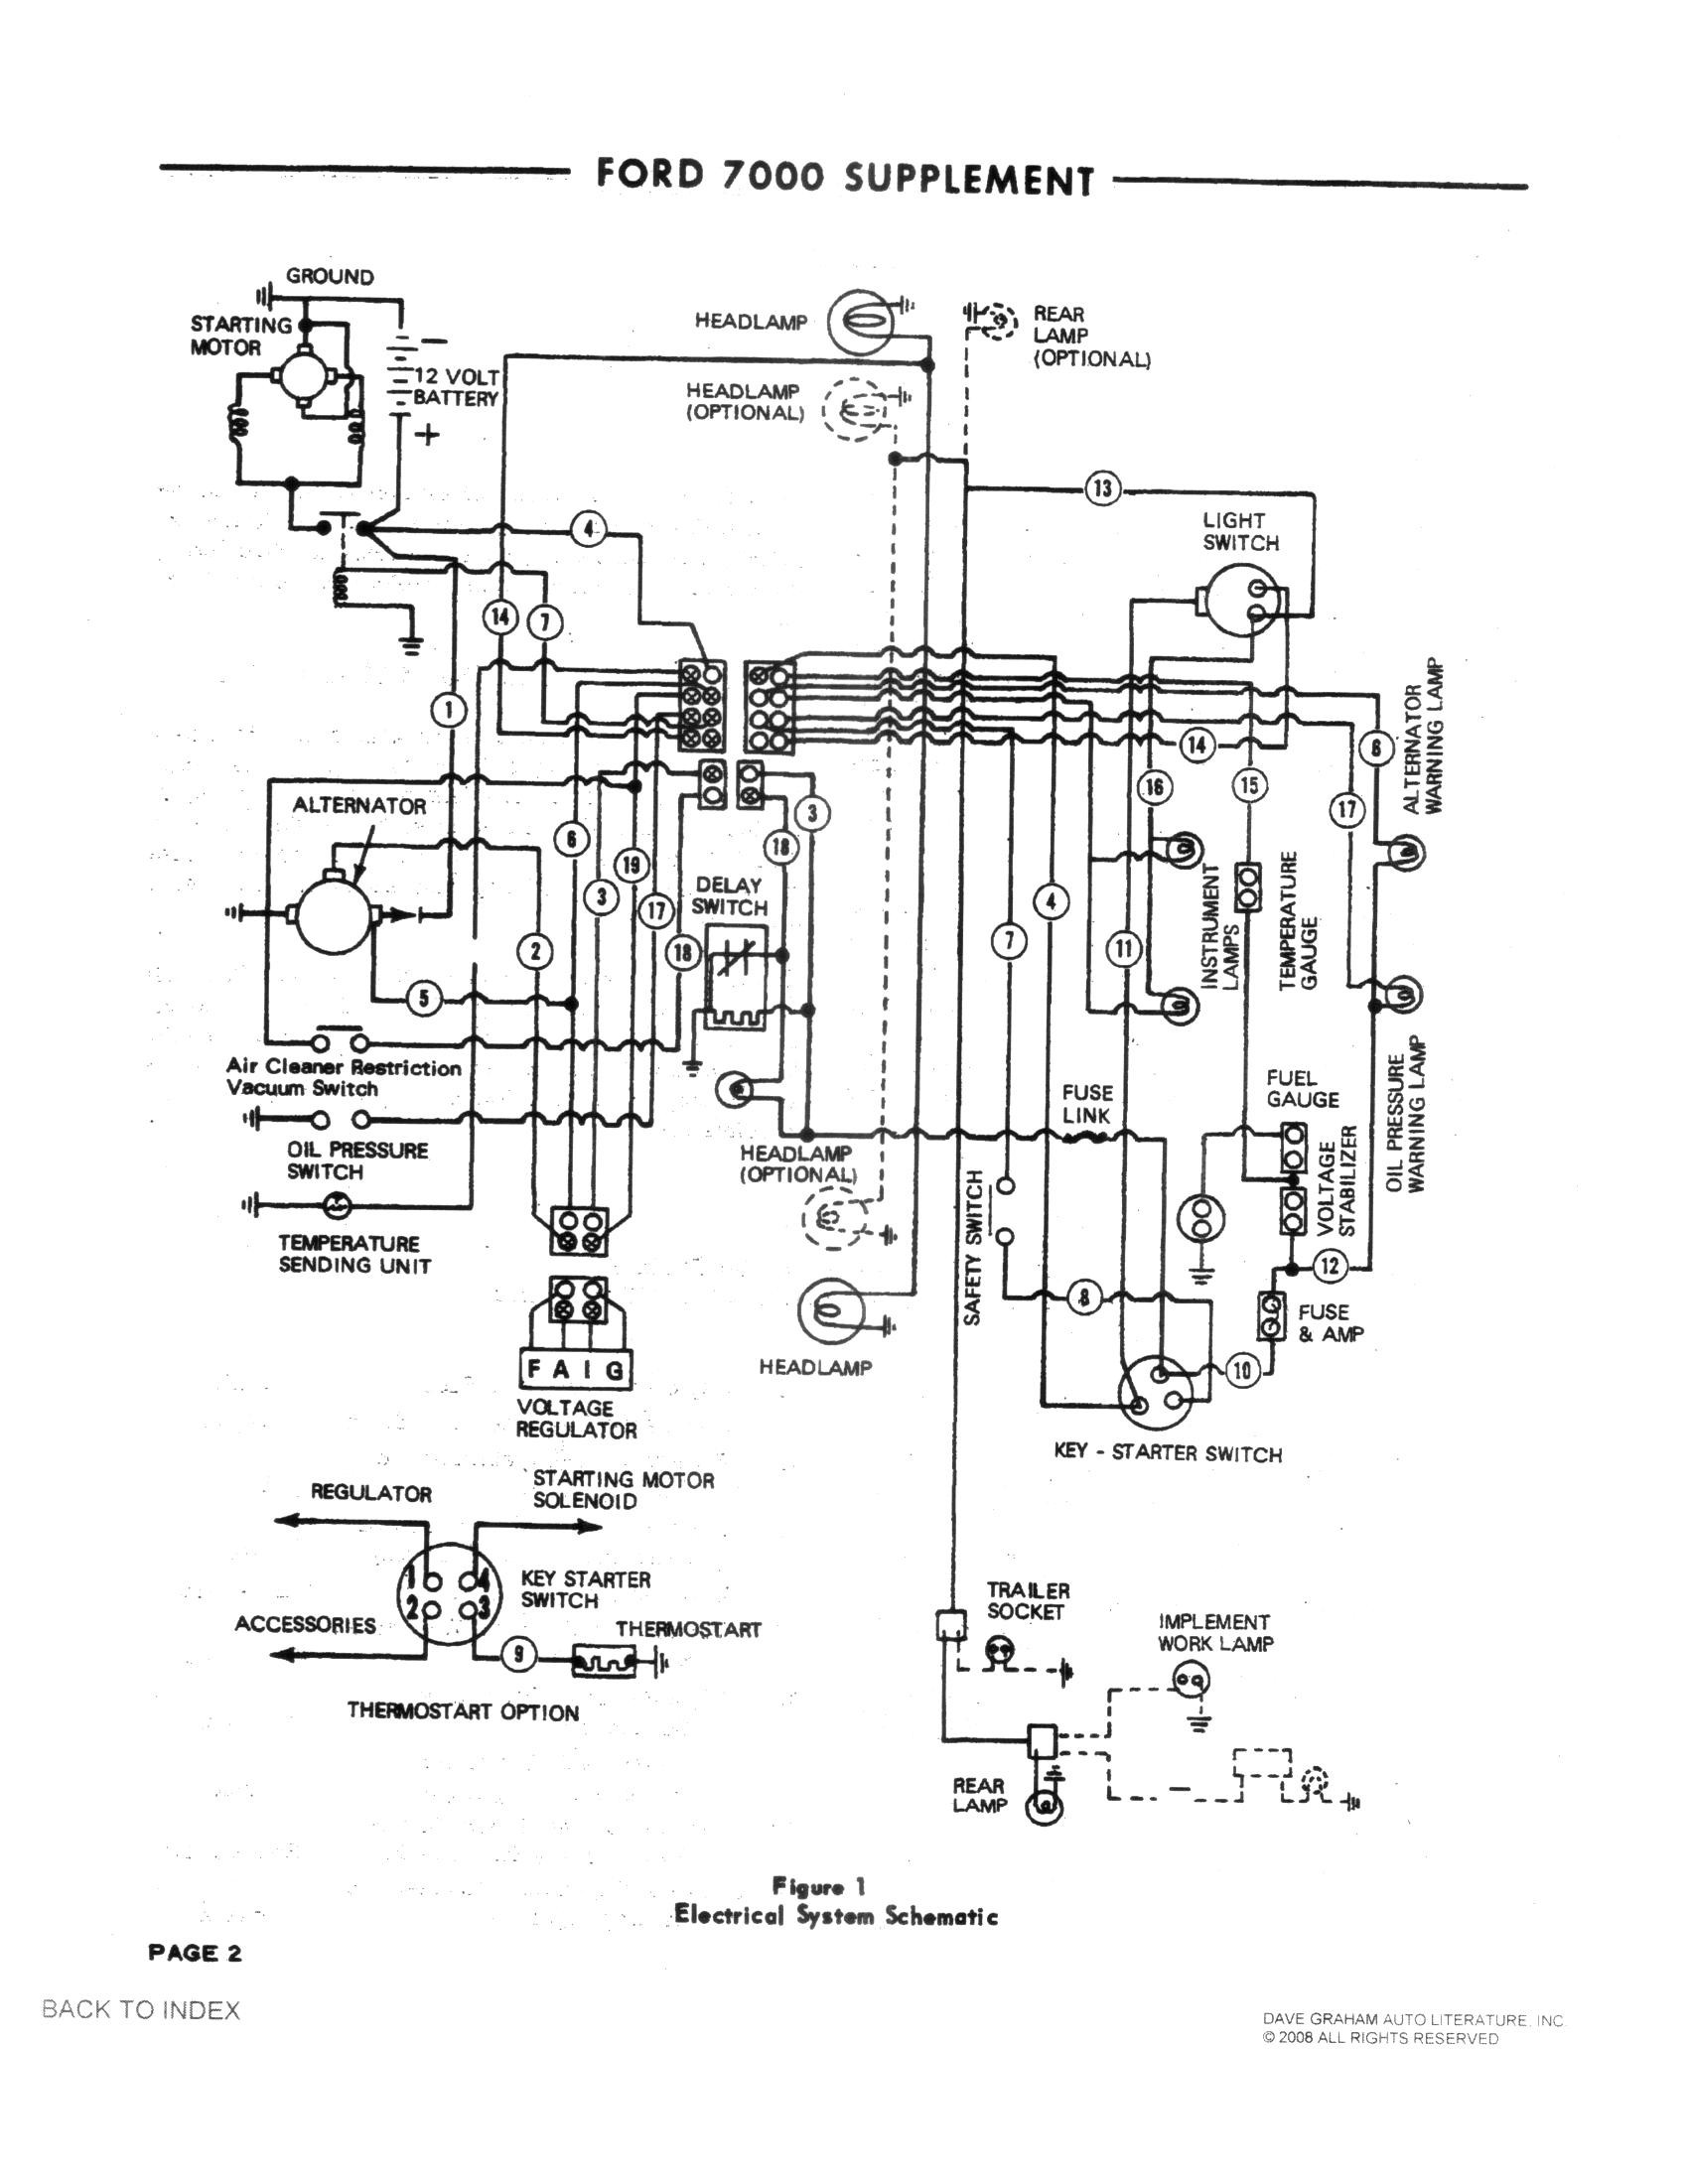 hight resolution of 4600 ford tractor wiring diagram schema diagram database ford 4600 tractor wiring diagram 4600 ford tractor